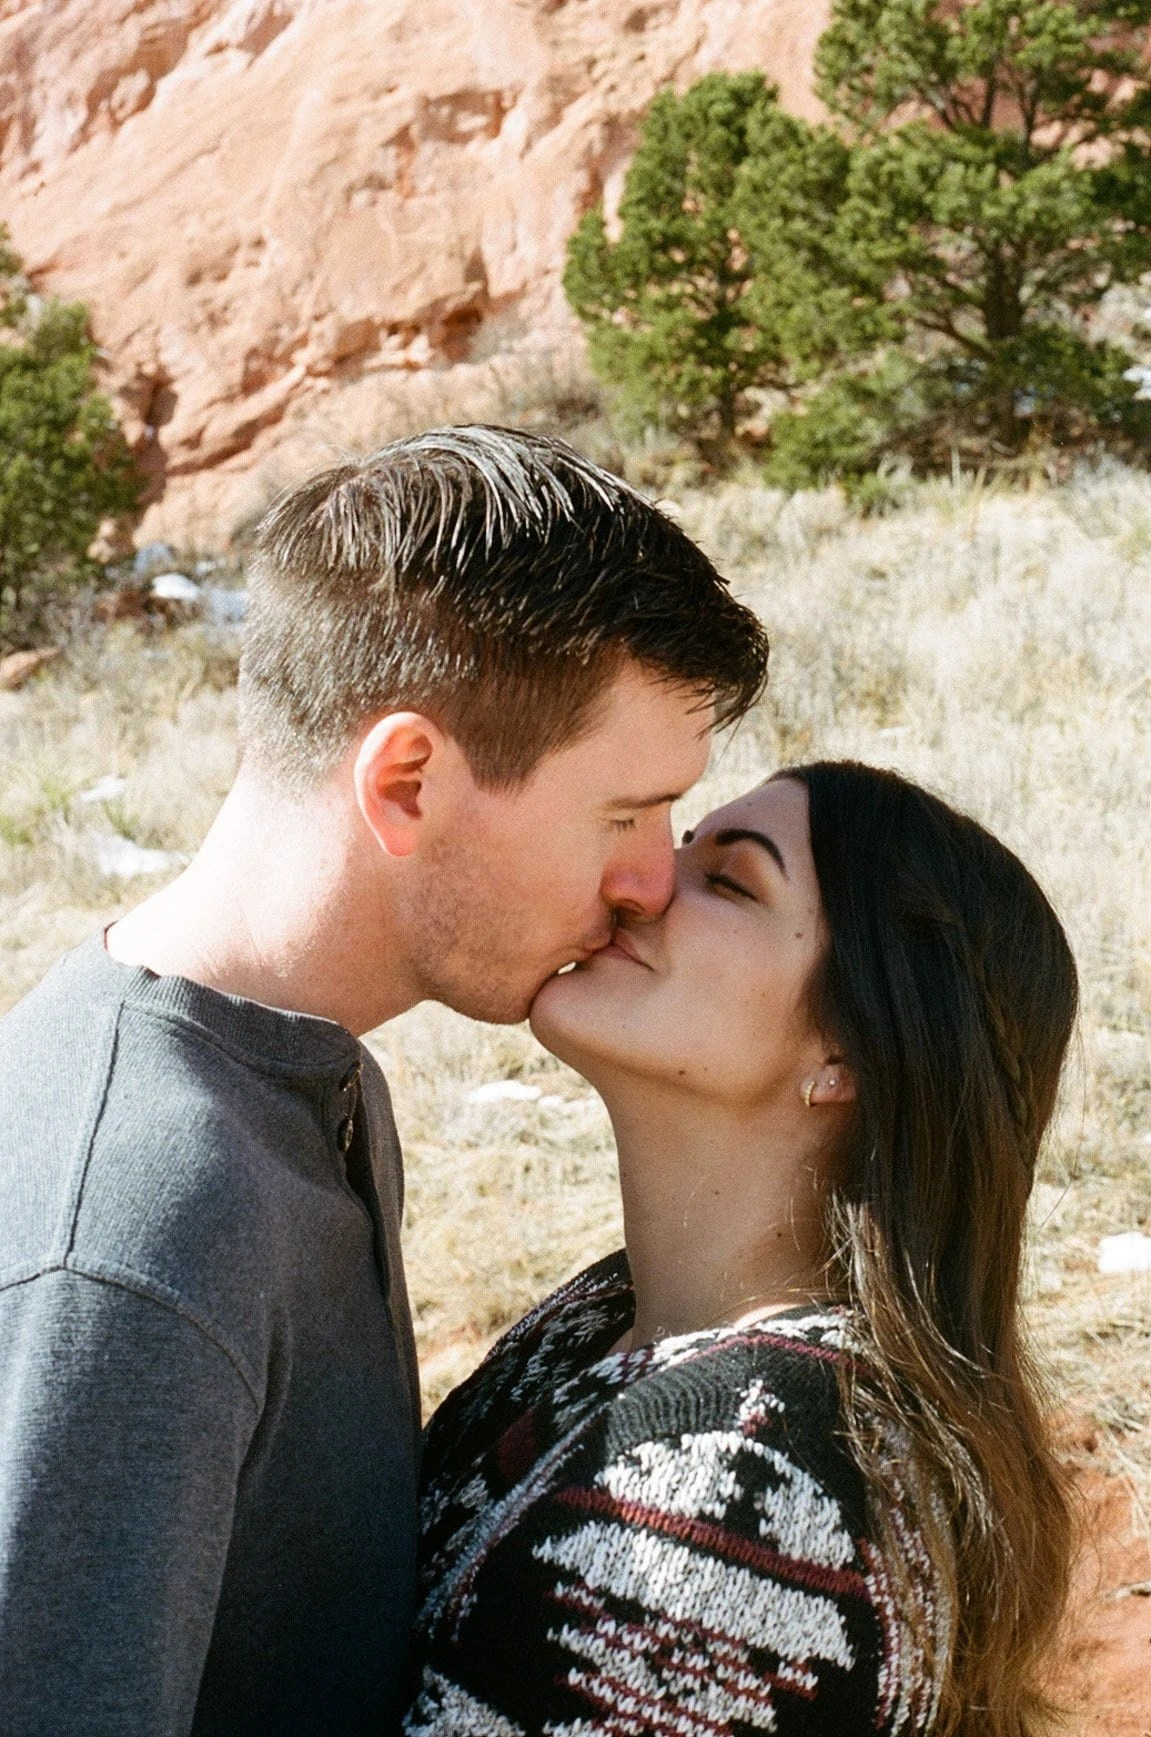 couple on film in garden of the gods colorado. Adventure among red rock and towers that will capture your imagination